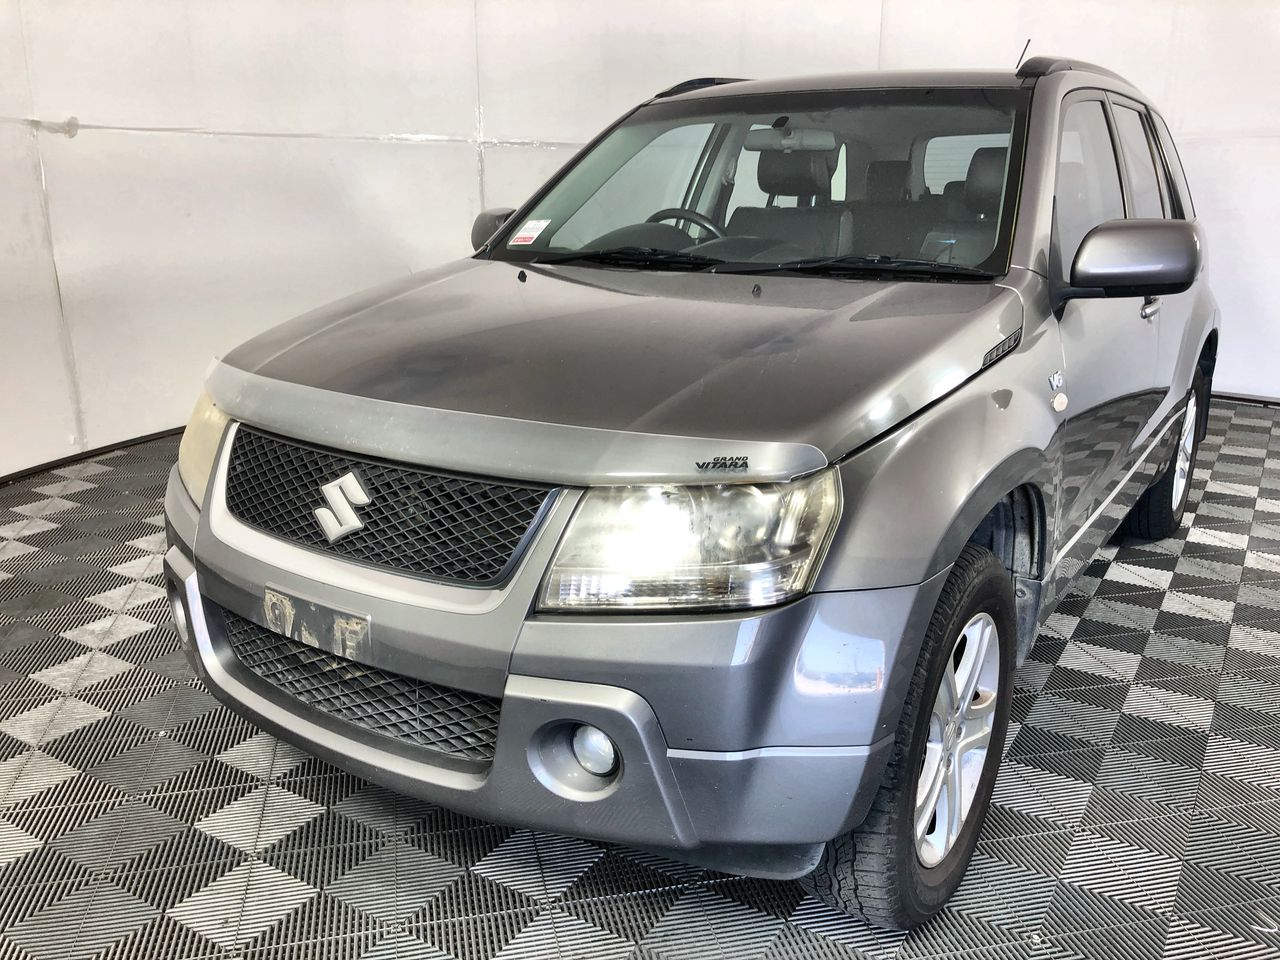 2006 Suzuki Grand Vitara V6 JT Automatic Wagon